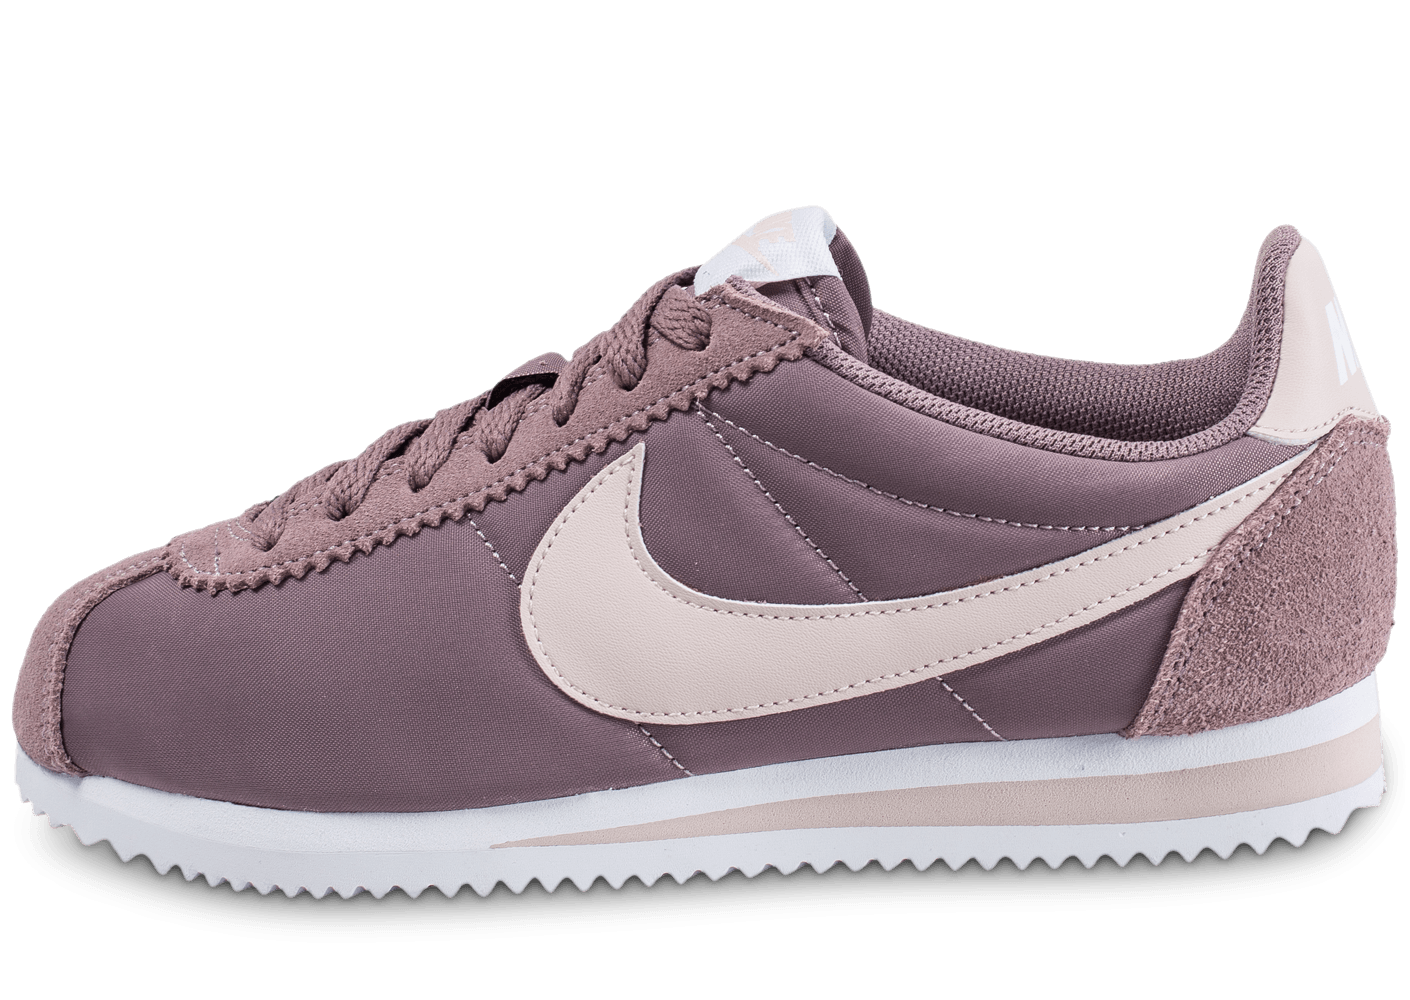 nike classic cortez nylon w mauve chaussures femme chausport. Black Bedroom Furniture Sets. Home Design Ideas